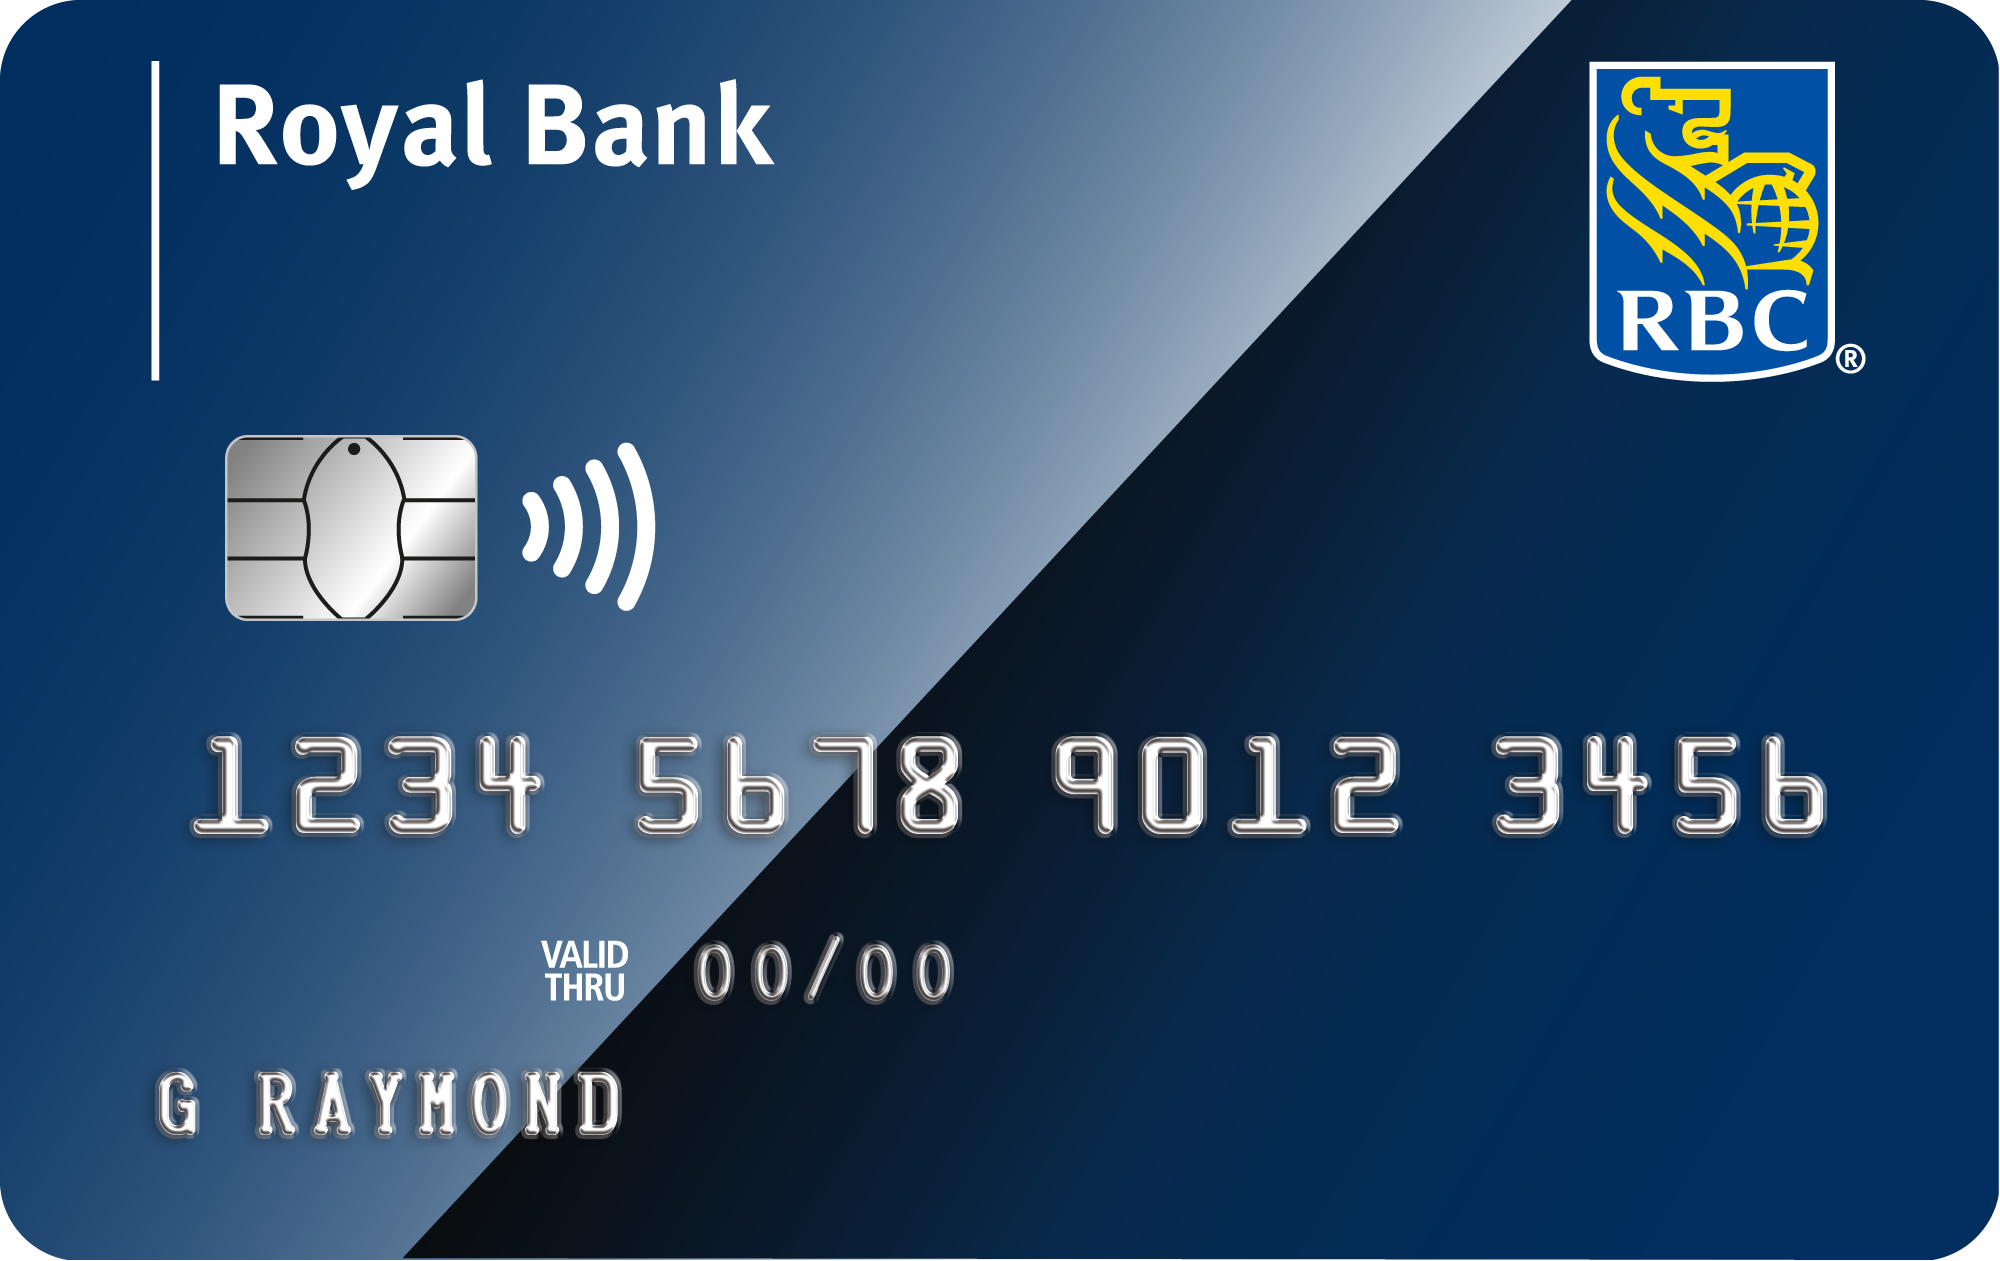 Credit Card Activation - RBC Royal Bank Online Credit Card